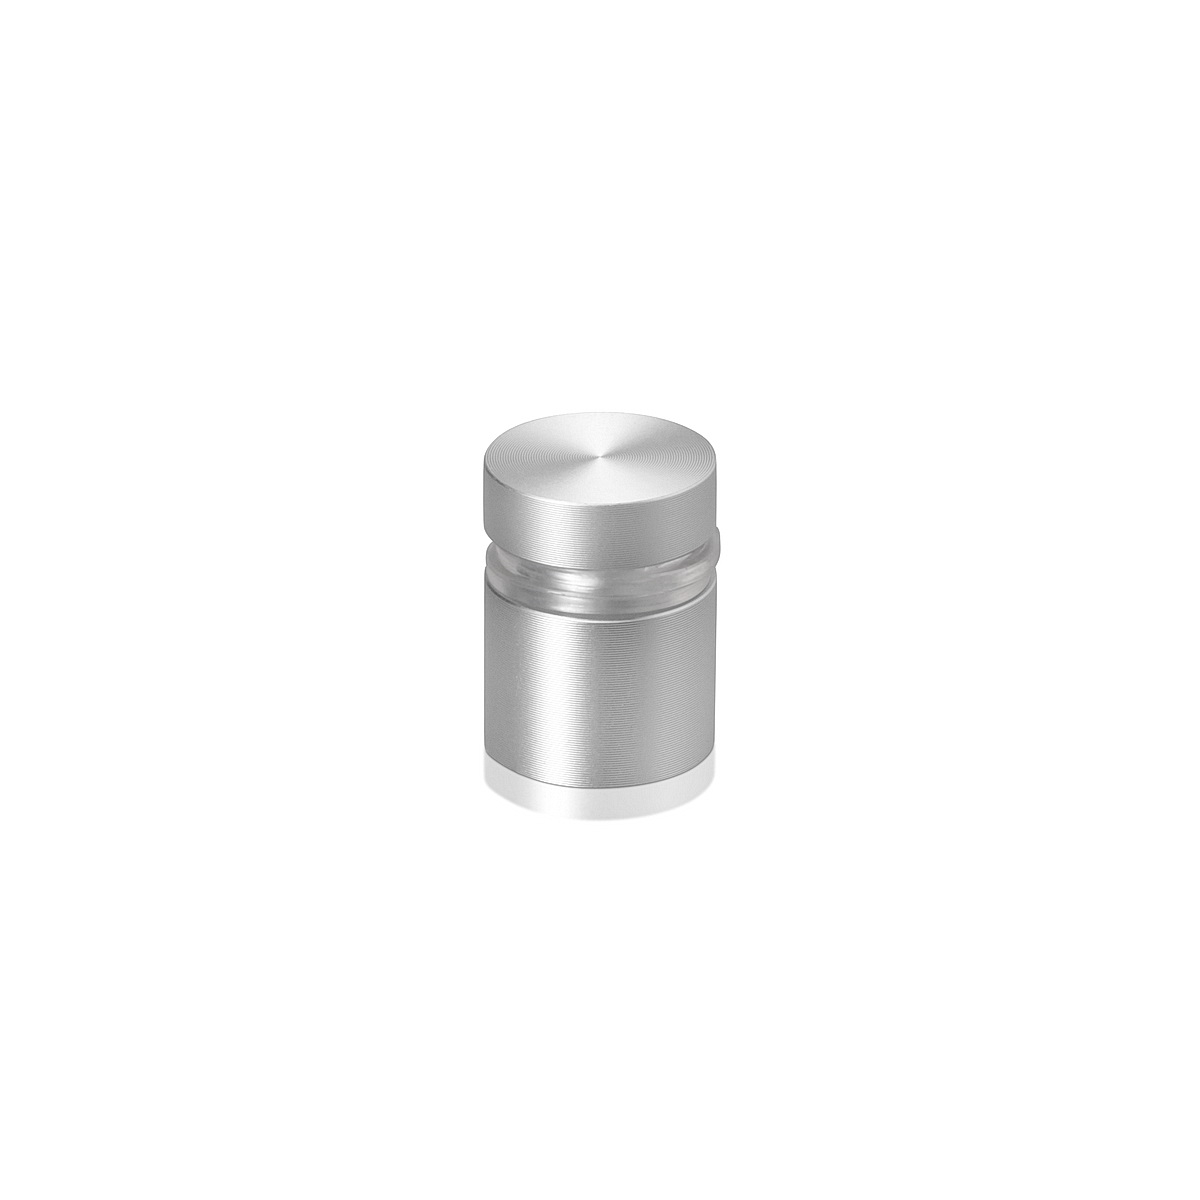 Tamper Proof Aluminum Flat Head Standoffs, Diameter: 5/8'', Standoff: 1/2'', Clear Anodized Finish